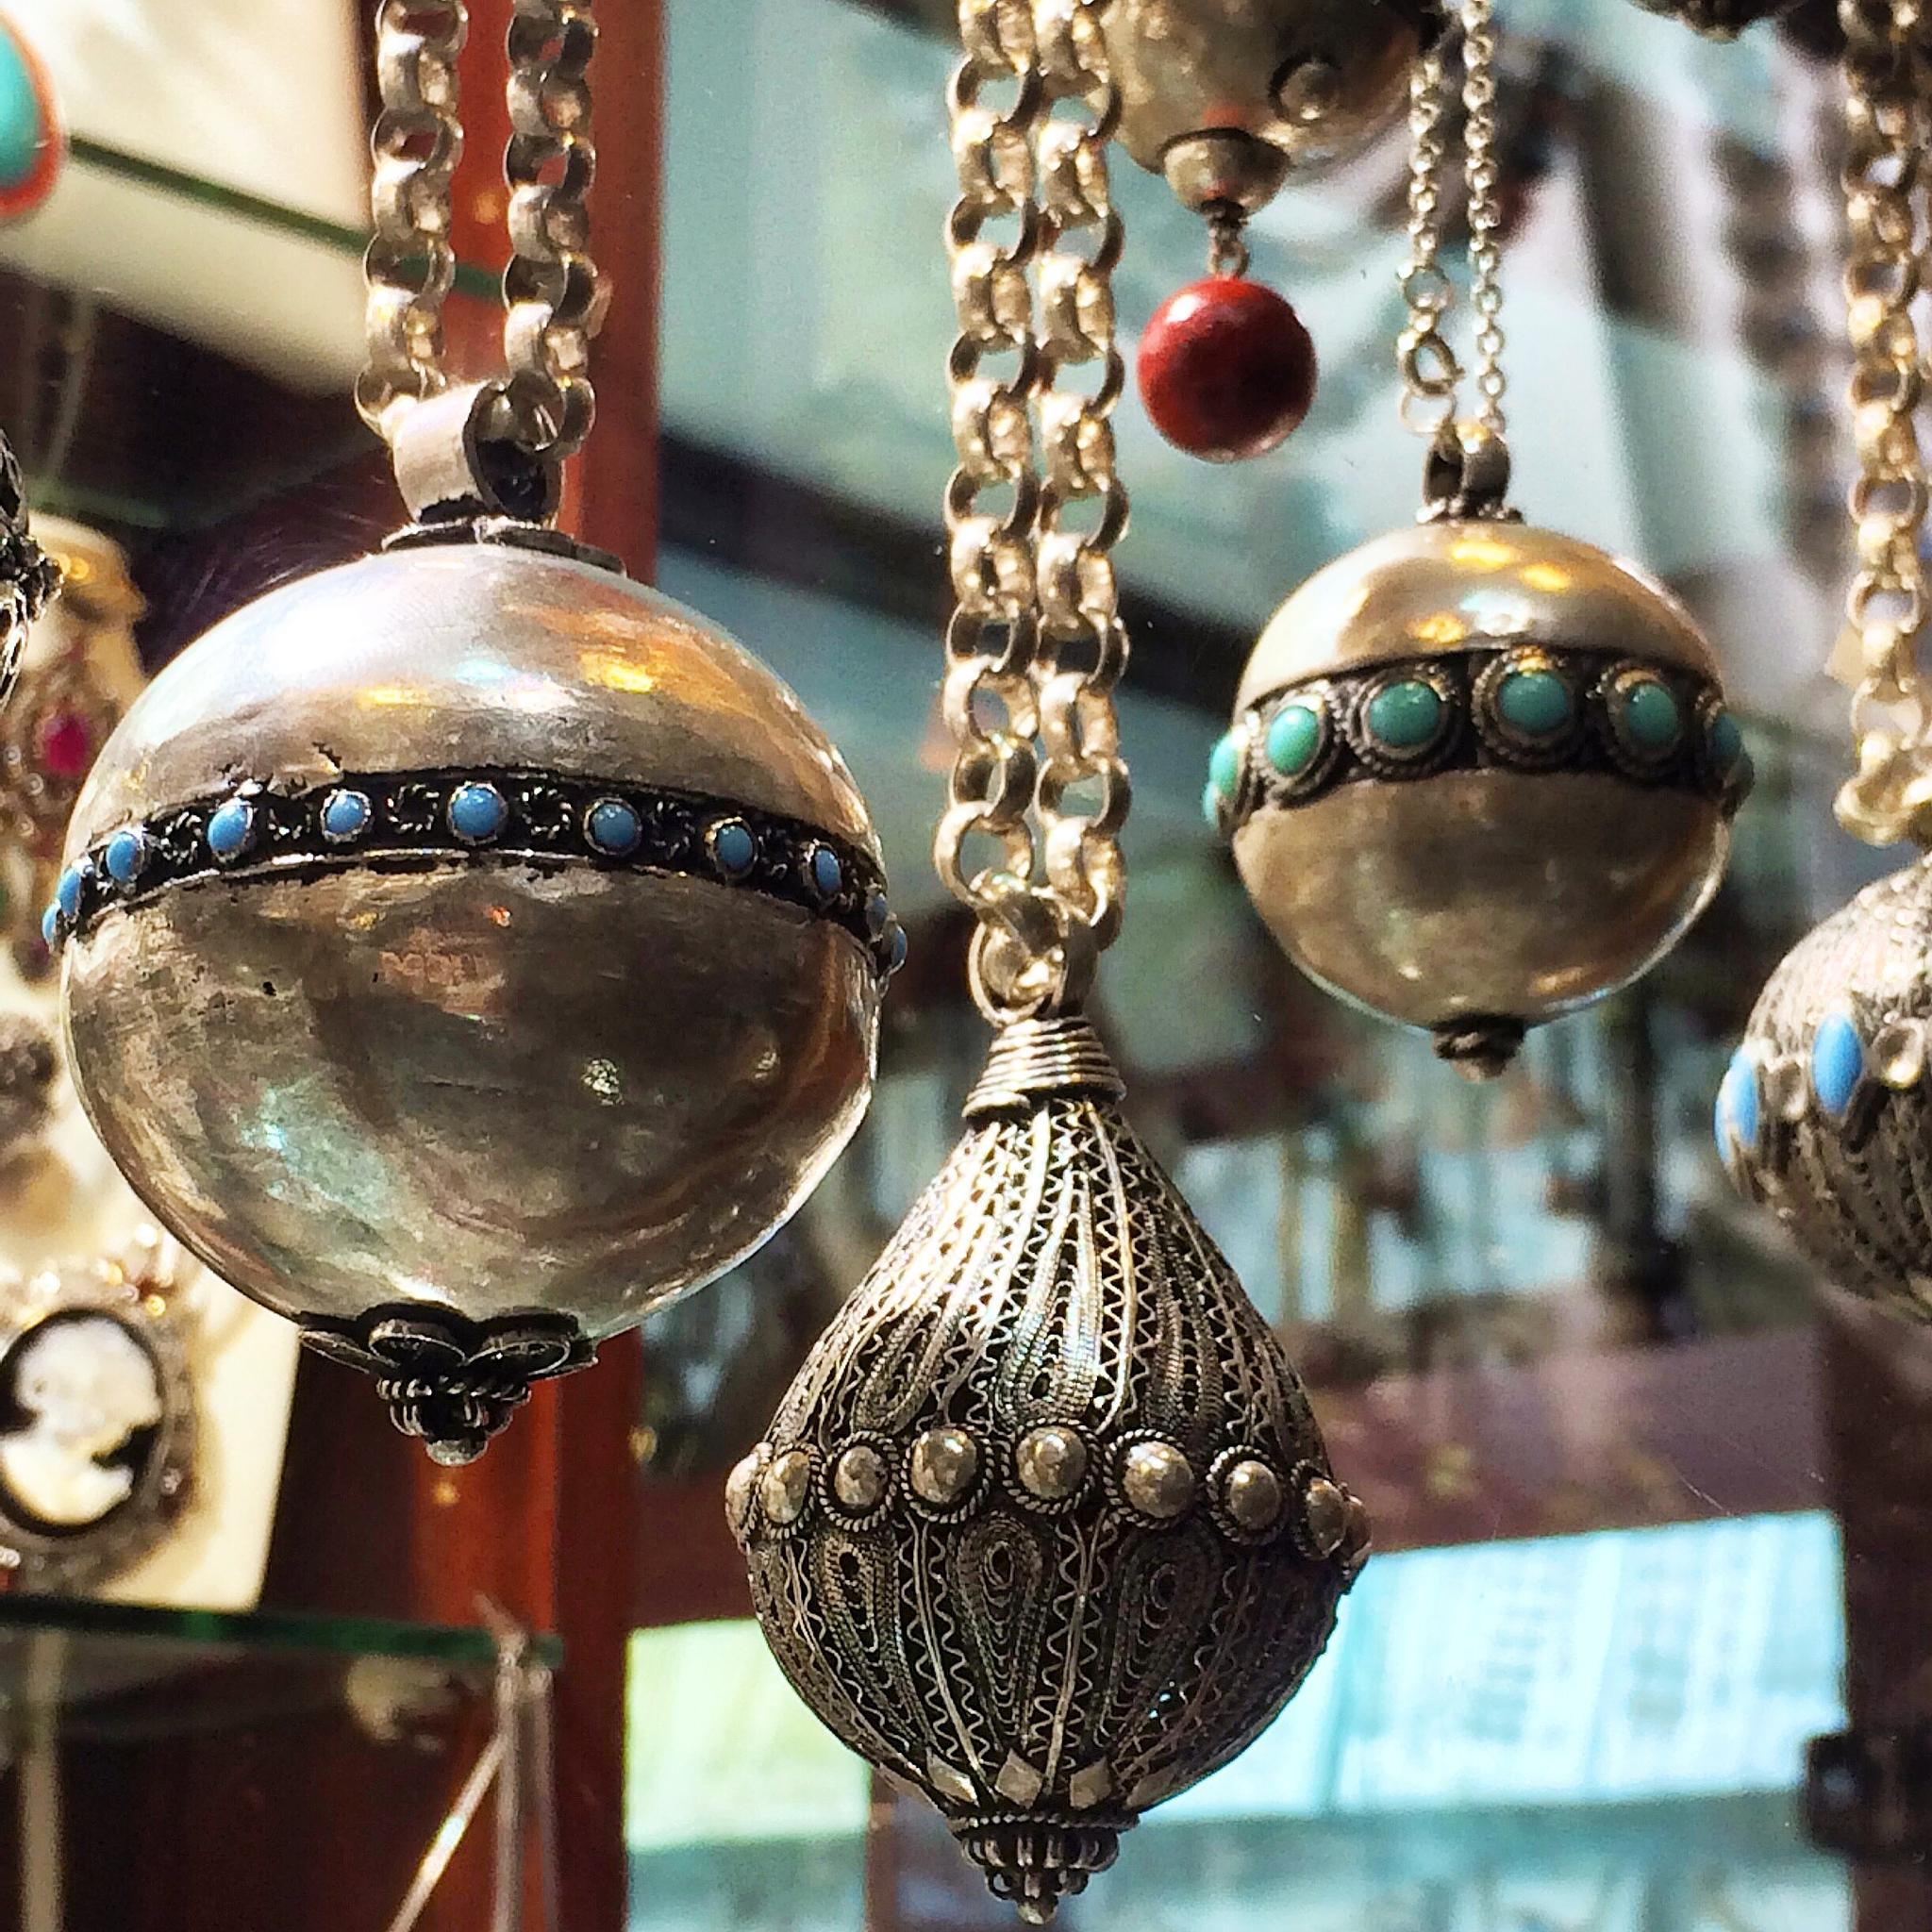 Baubles by Gayle